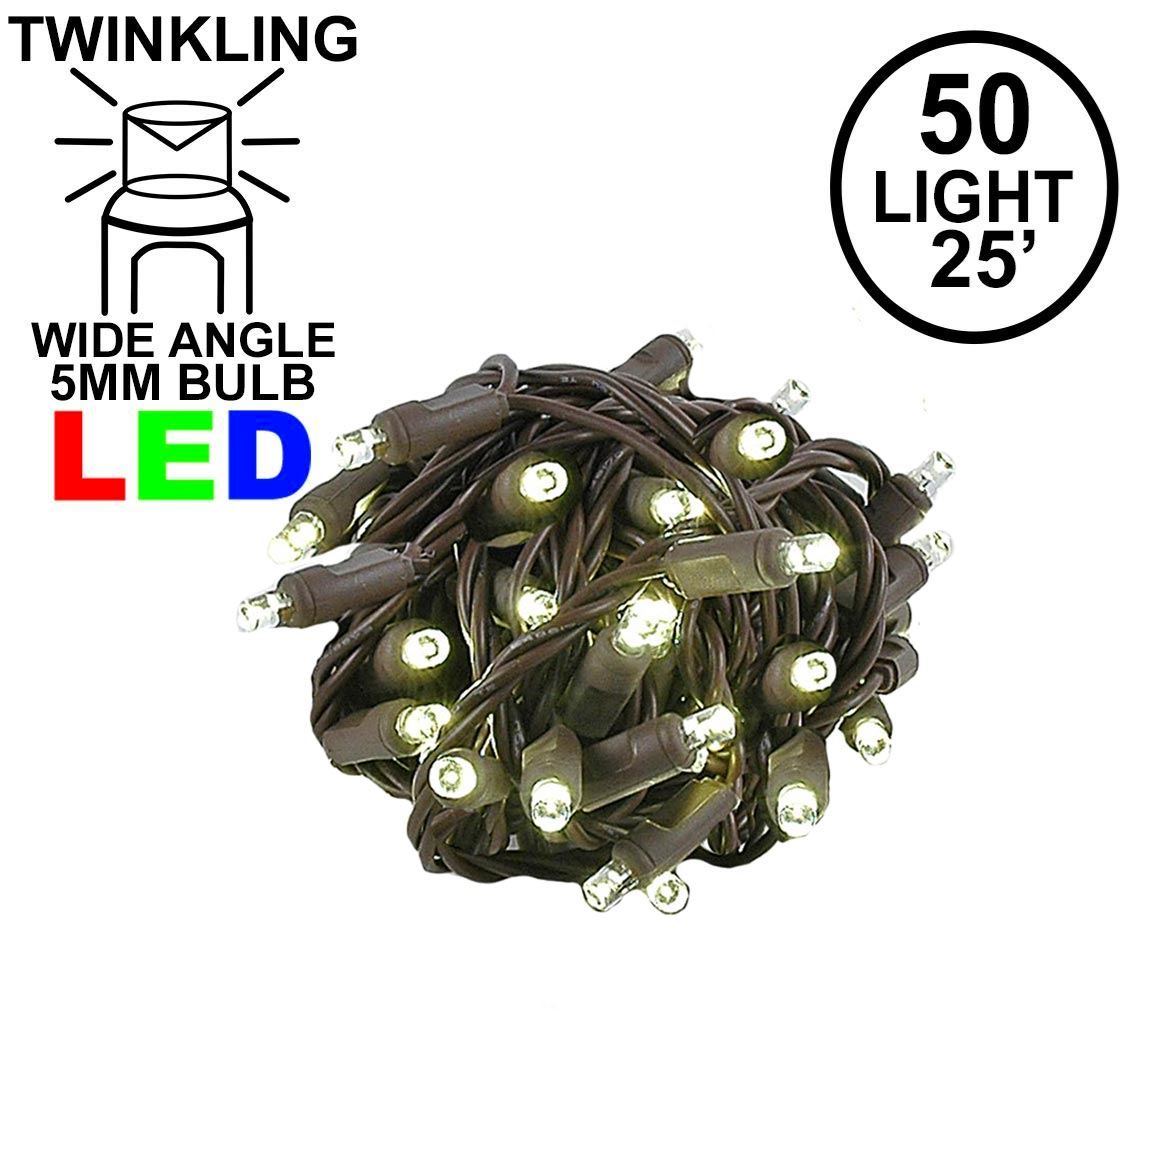 Picture of Twinkle LED Christmas Lights 50 LED Warm White 25' Brown Wire